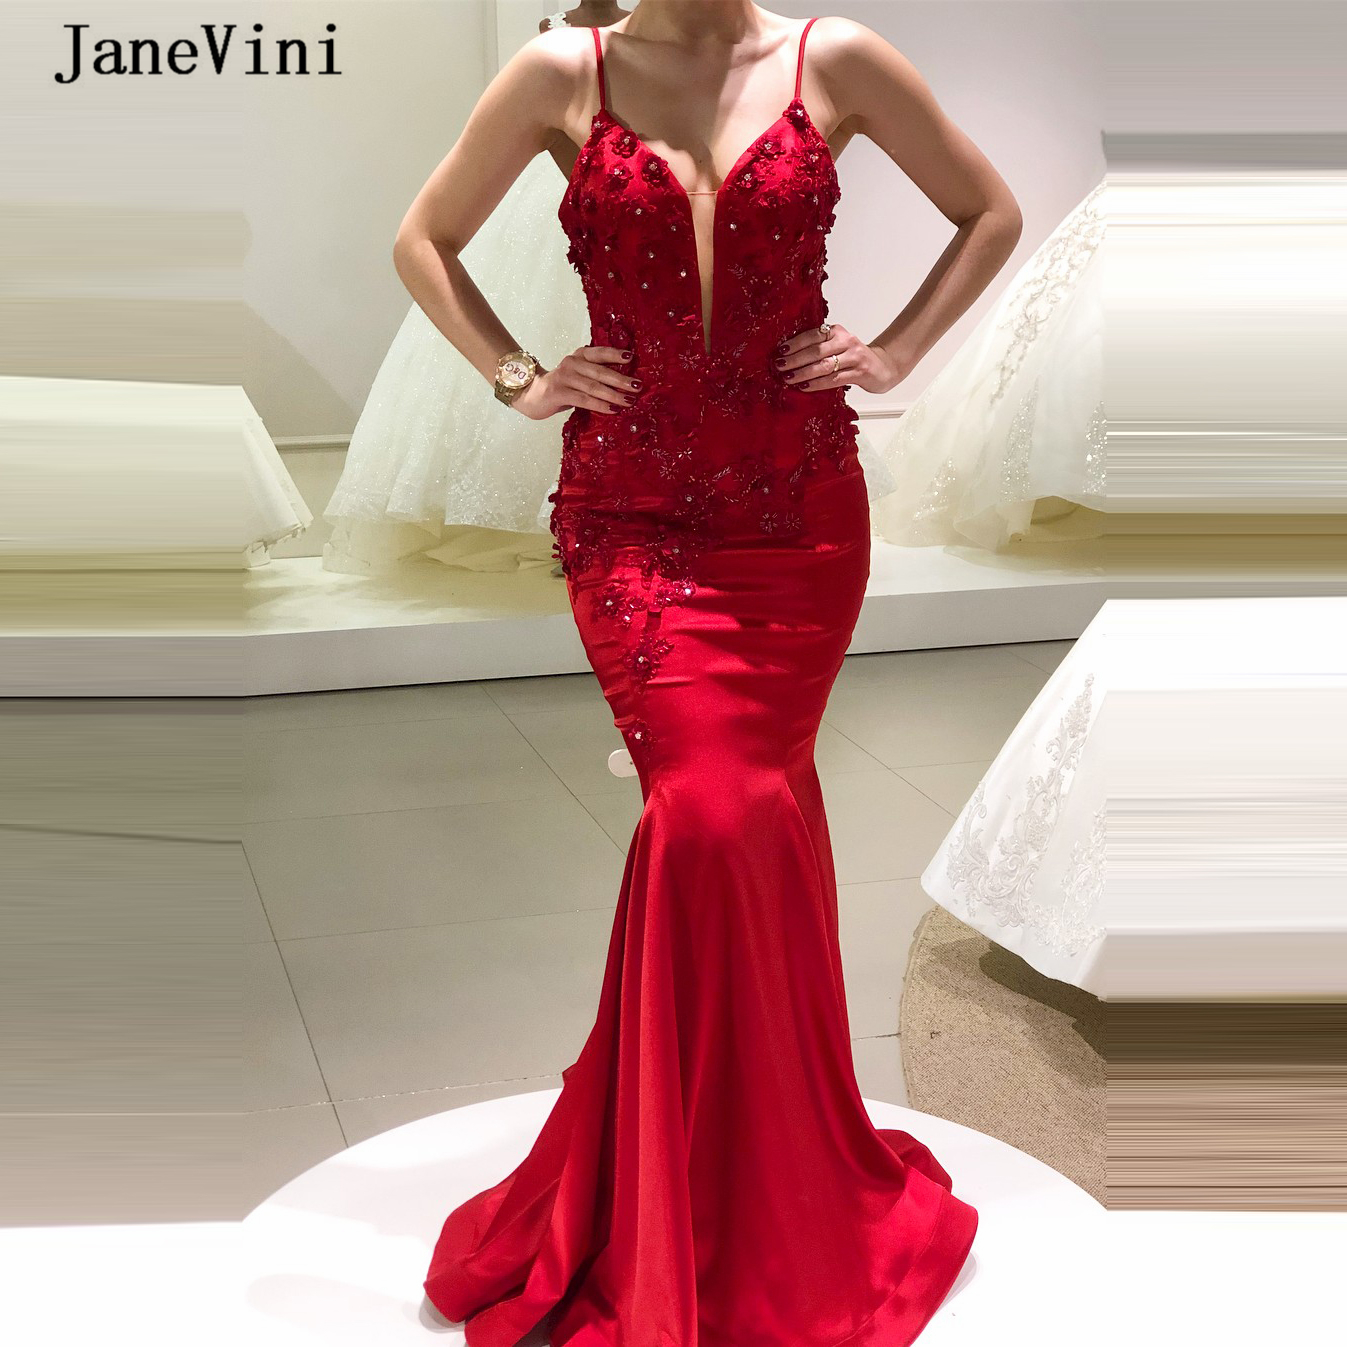 JaneVini Charming Red Mermaid Long Evening Dresses 2020 Spaghetti Straps Handmade Flowers Beading Satin Sexy Women Dinner Gowns